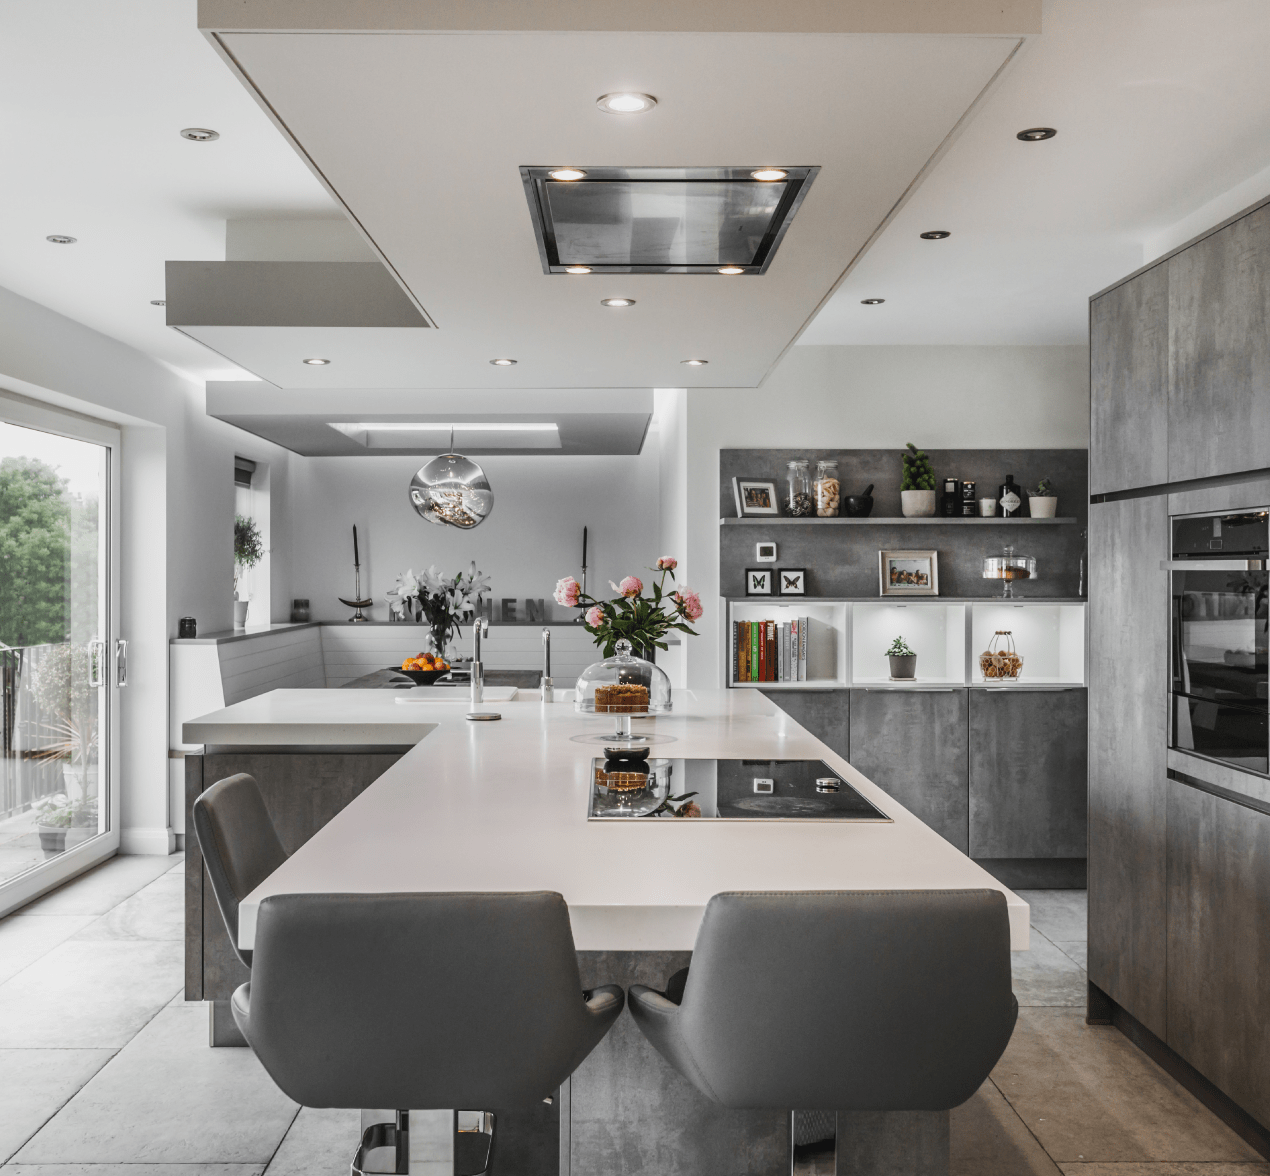 Kitchen Design Centre Hollinwood Designer Kitchens Award Winning Kitchen Design Centre